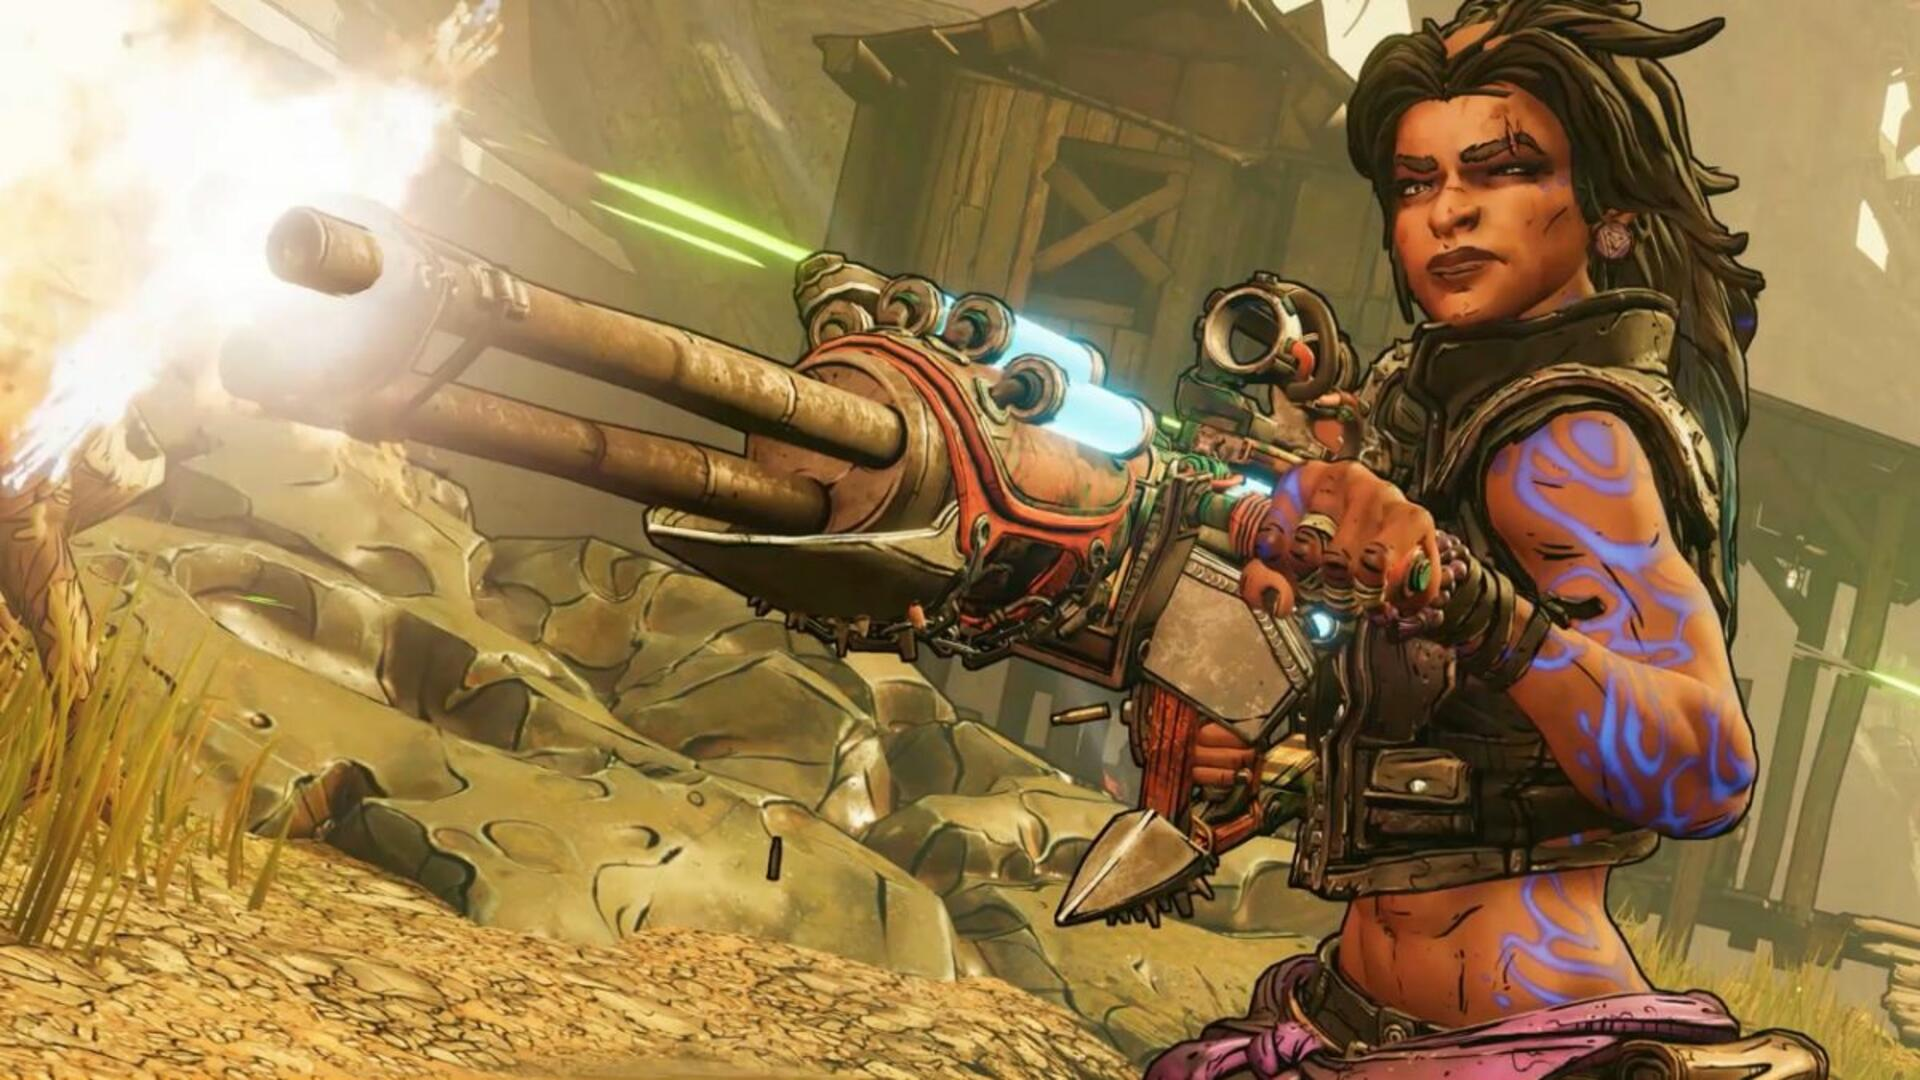 Borderlands 3: How to Respec Your Character and Reset Skill Points